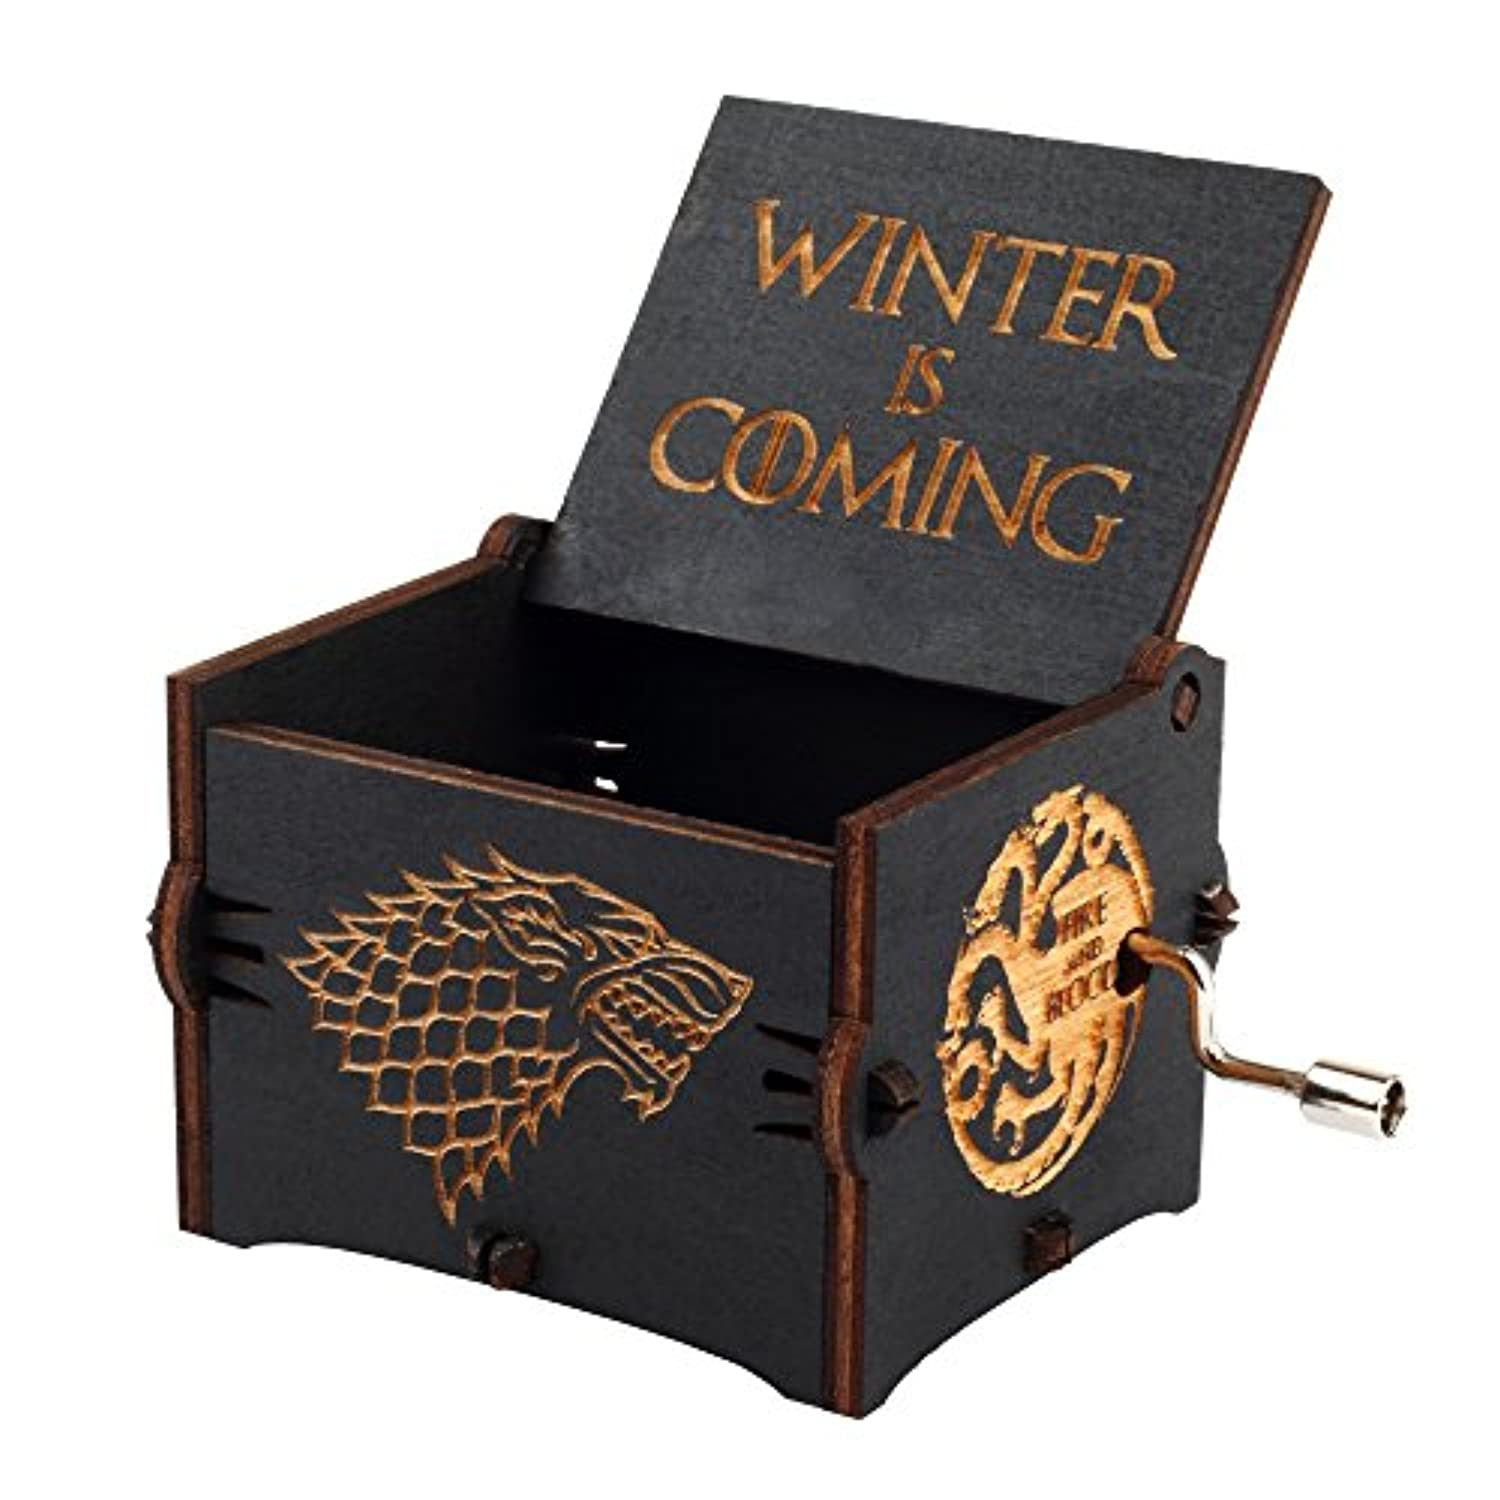 Engraved Wood Musical Box Music Box Main Theme Game of Thrones Game of Thrones Gift